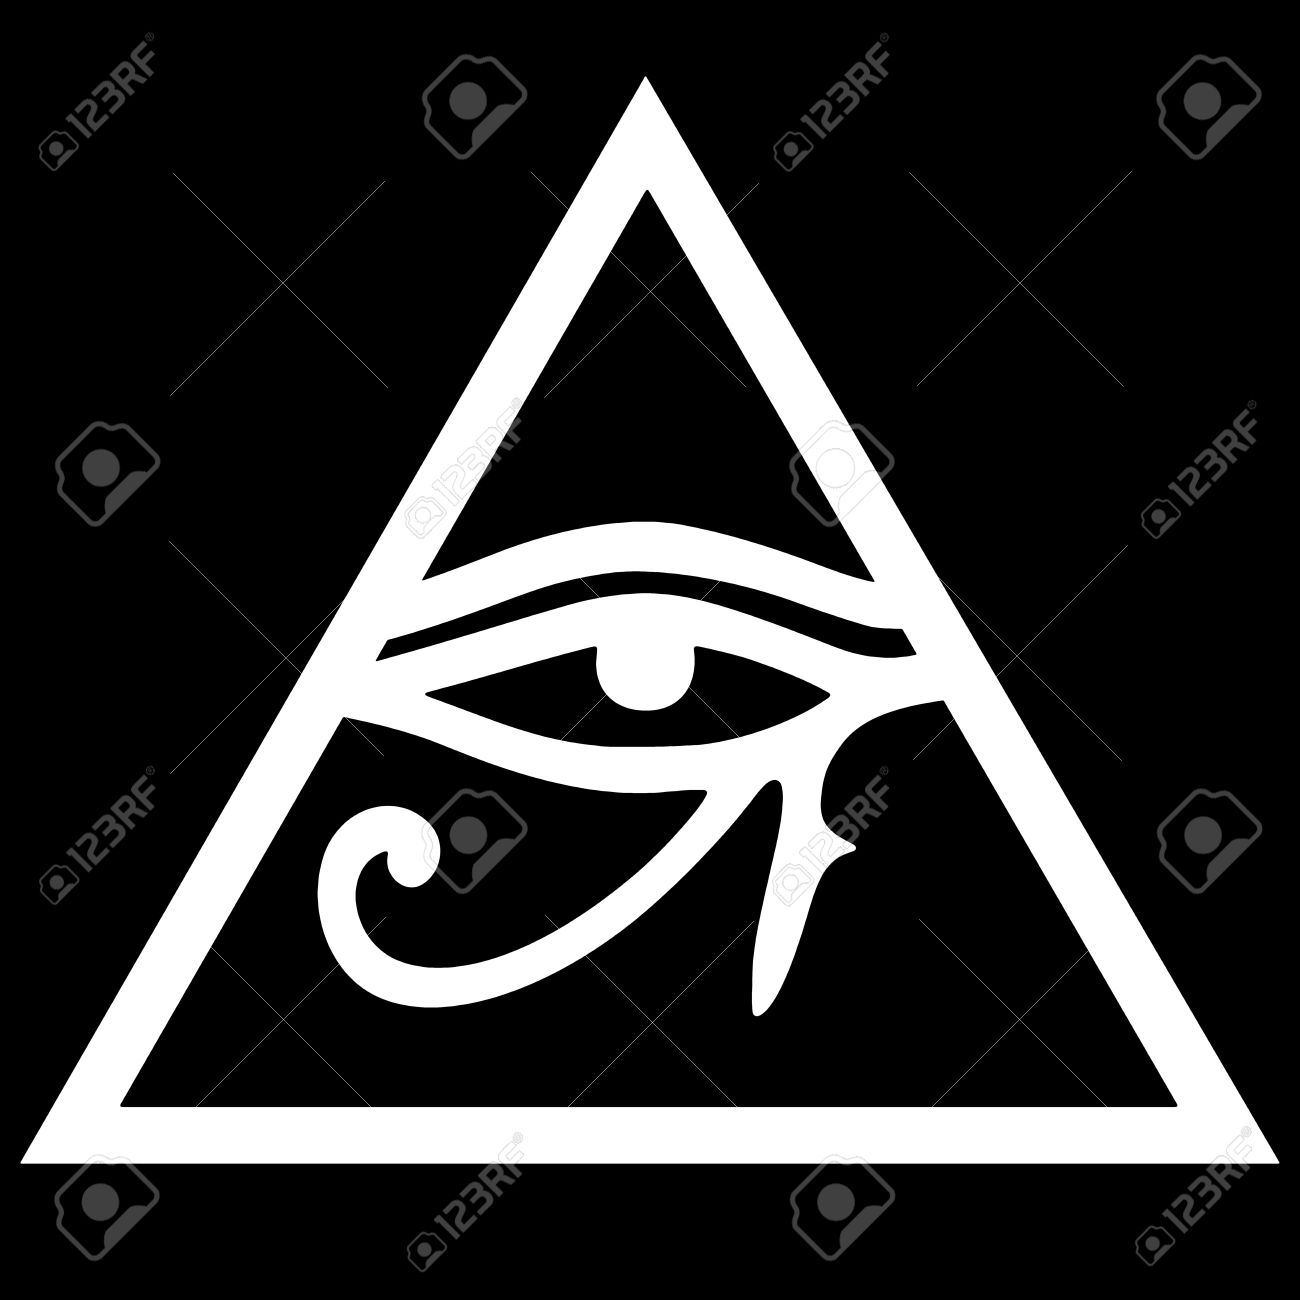 Icon Request Iconilluminati (conspiracy) · Issue #5713. Organization Signs. Coxiella Burnetii Signs. Red Streak Signs. Cemetery Signs Of Stroke. Unique Safety Signs. Diy Signs Of Stroke. Car Wash Signs Of Stroke. Lymphoid Hyperplasia Signs